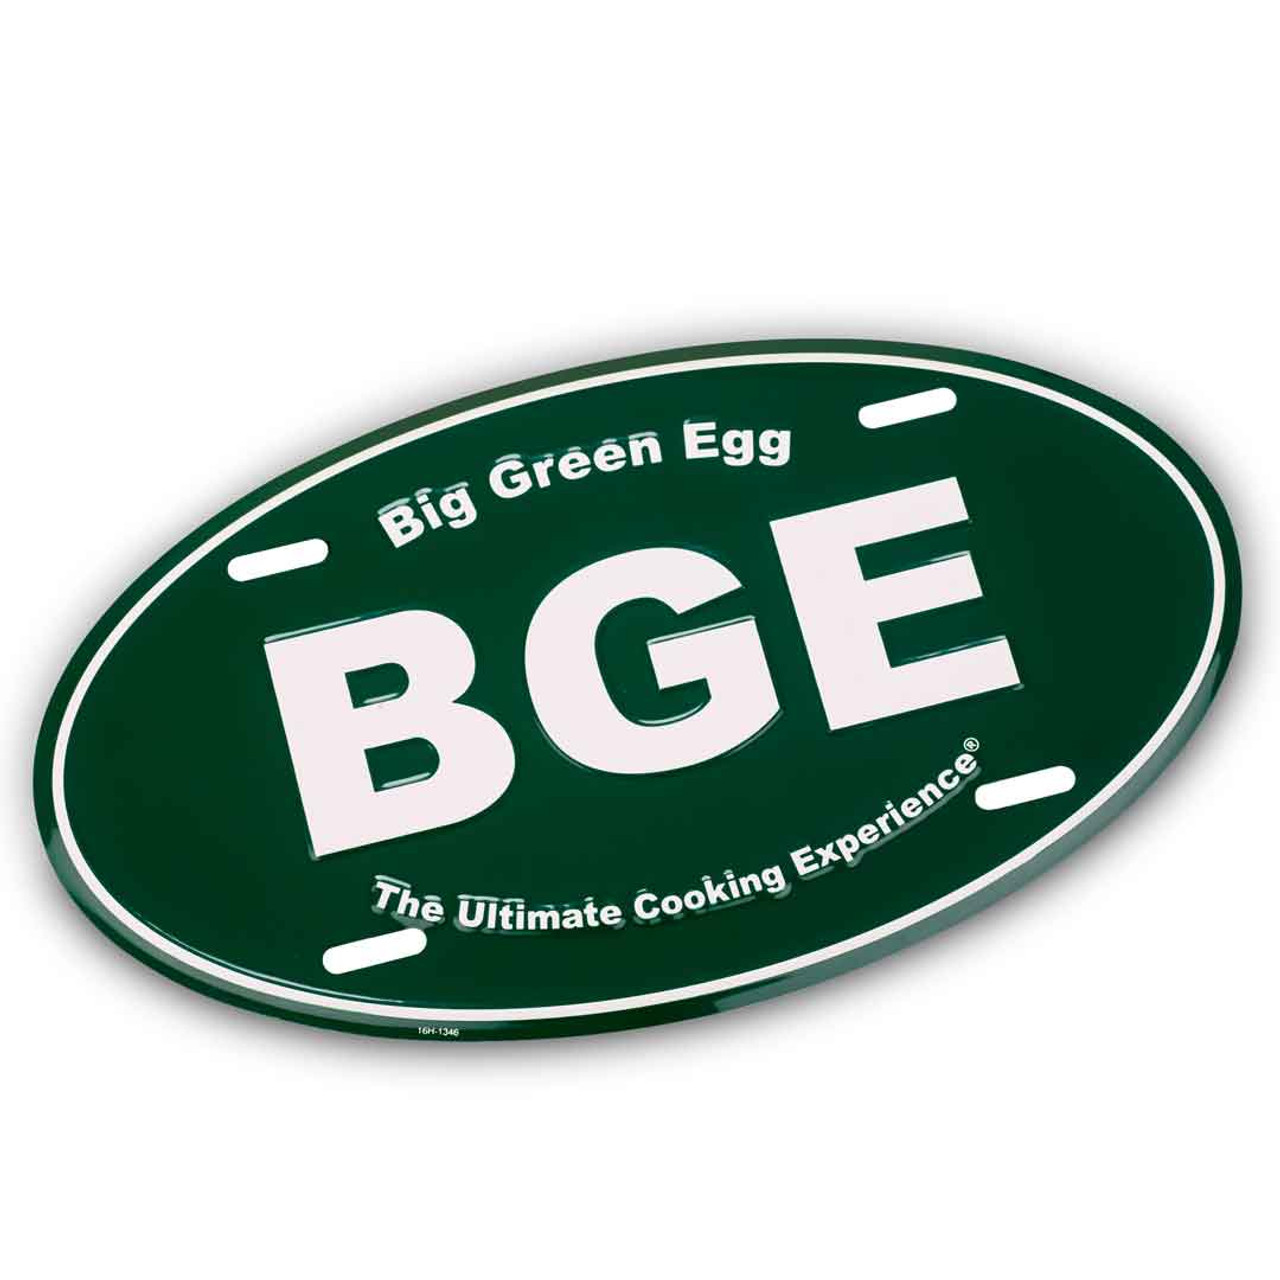 BGE oval sign/front license plate